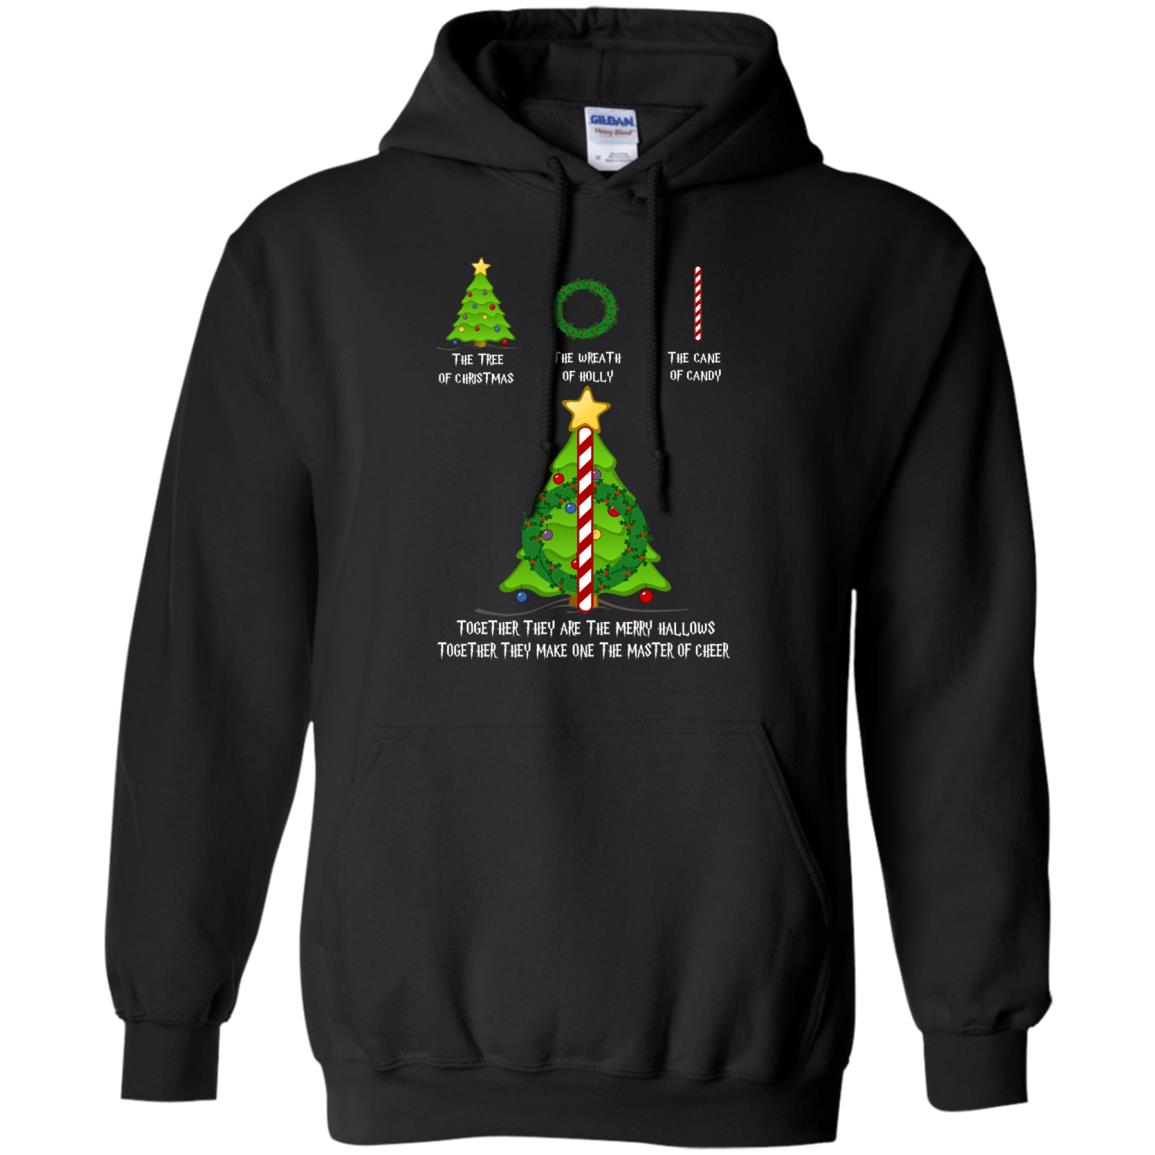 image 377px The Tree Of Christmas The Wreath of Holly The Cane Of Candy T Shirts